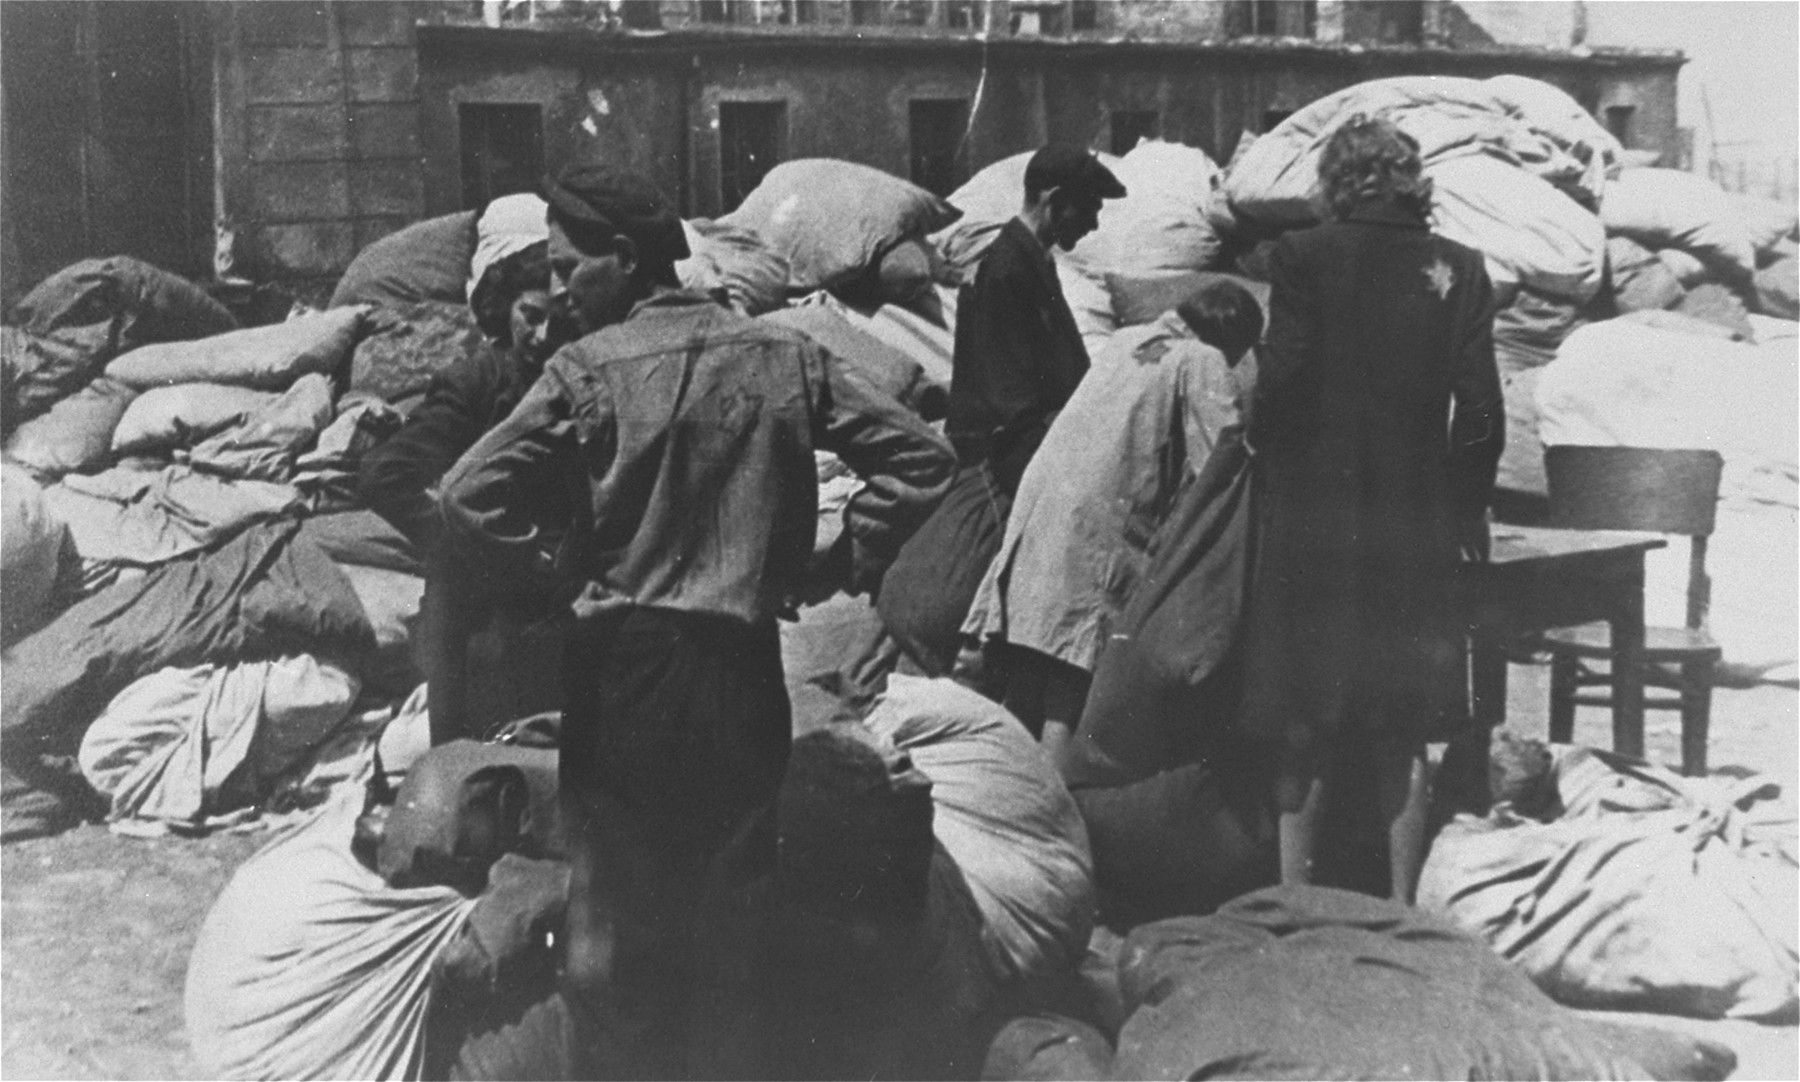 Jewish men and women prepare to sort  clothing that was confiscated from the deportees to the Chelmno death camp.